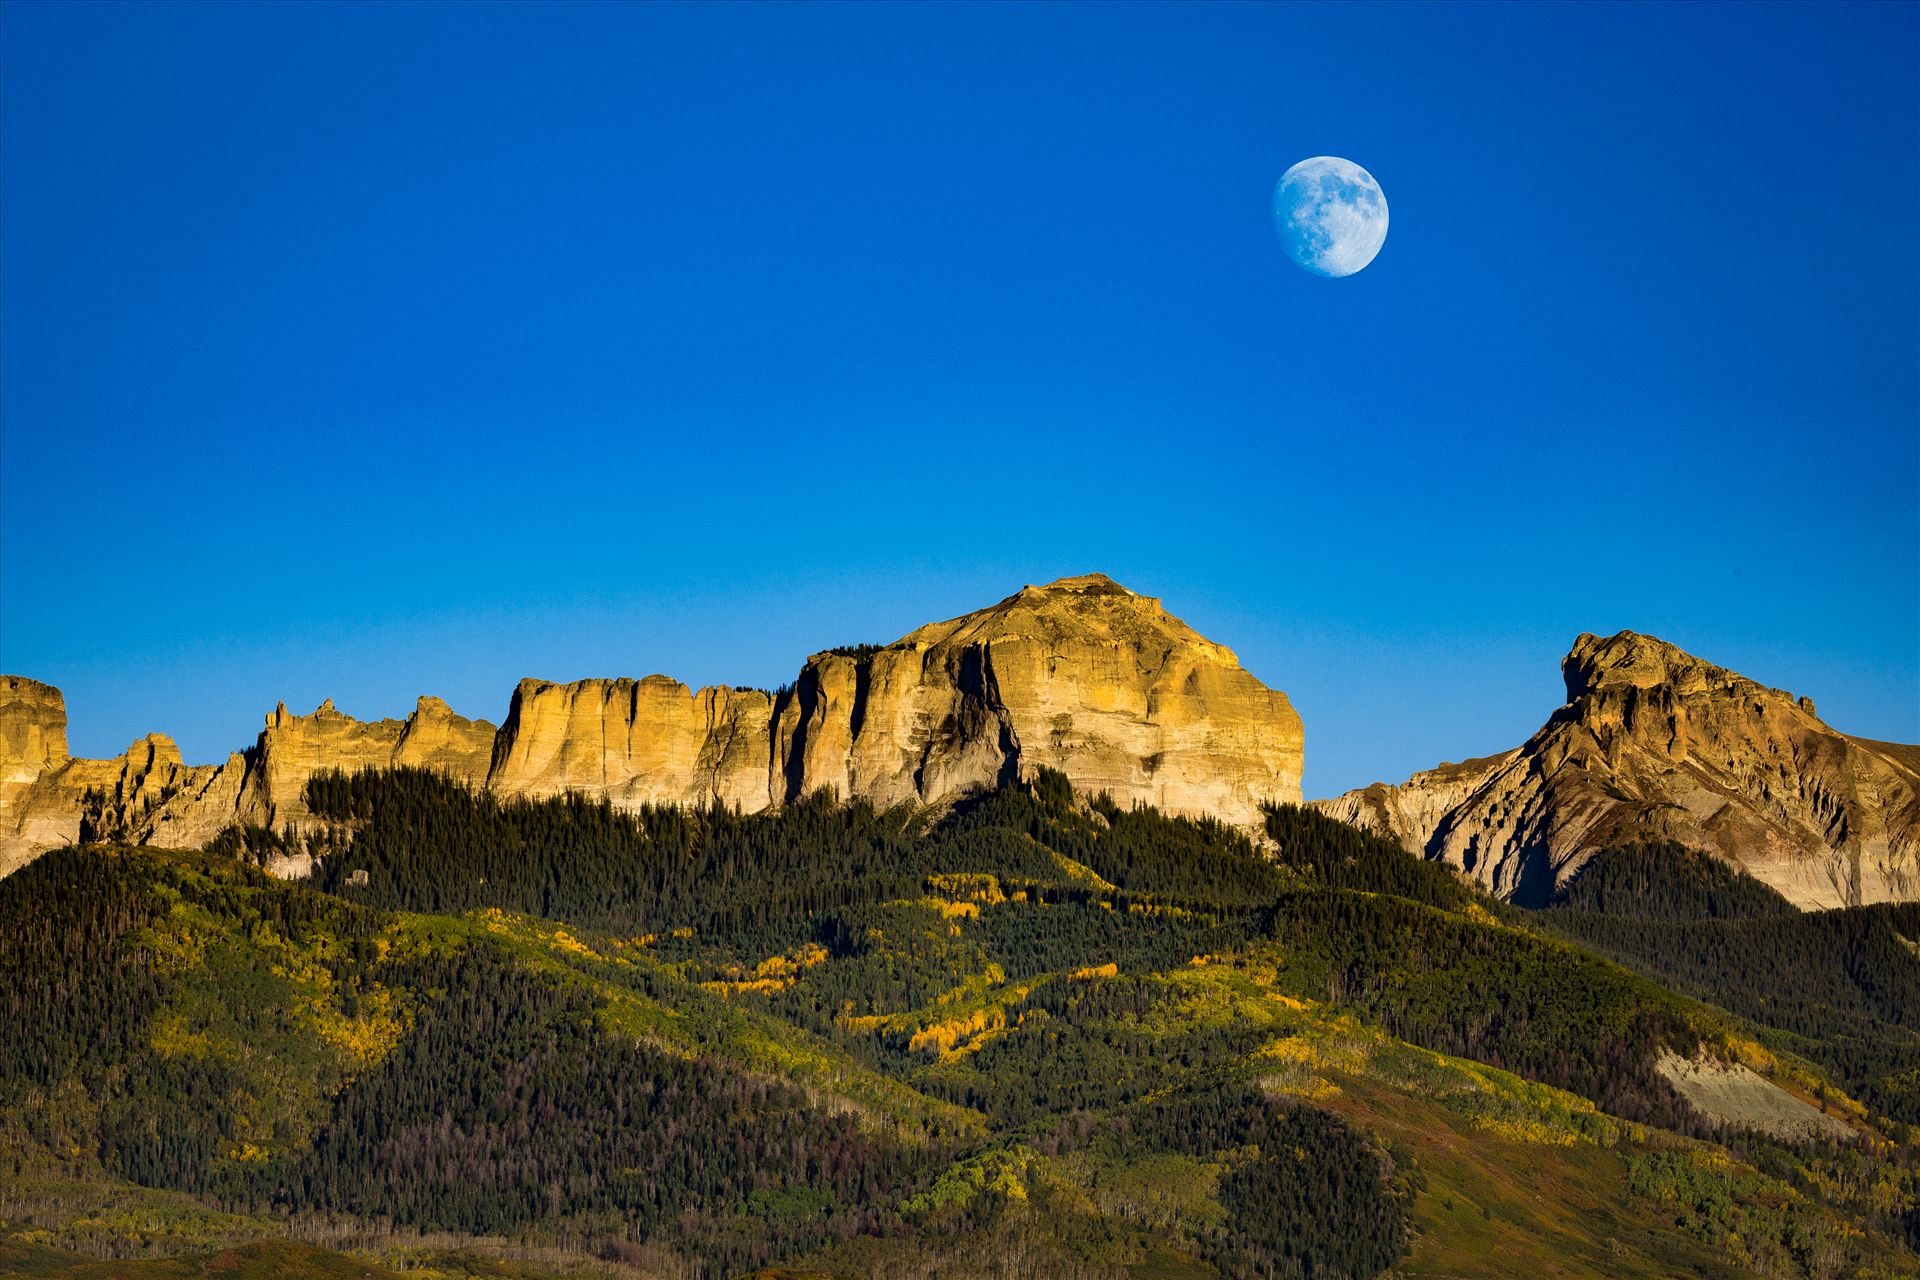 Moonrise over Chimney Peak - The moon rises over Chimney Peak outside of Ridgeway, Colorado. by D Scott Smith